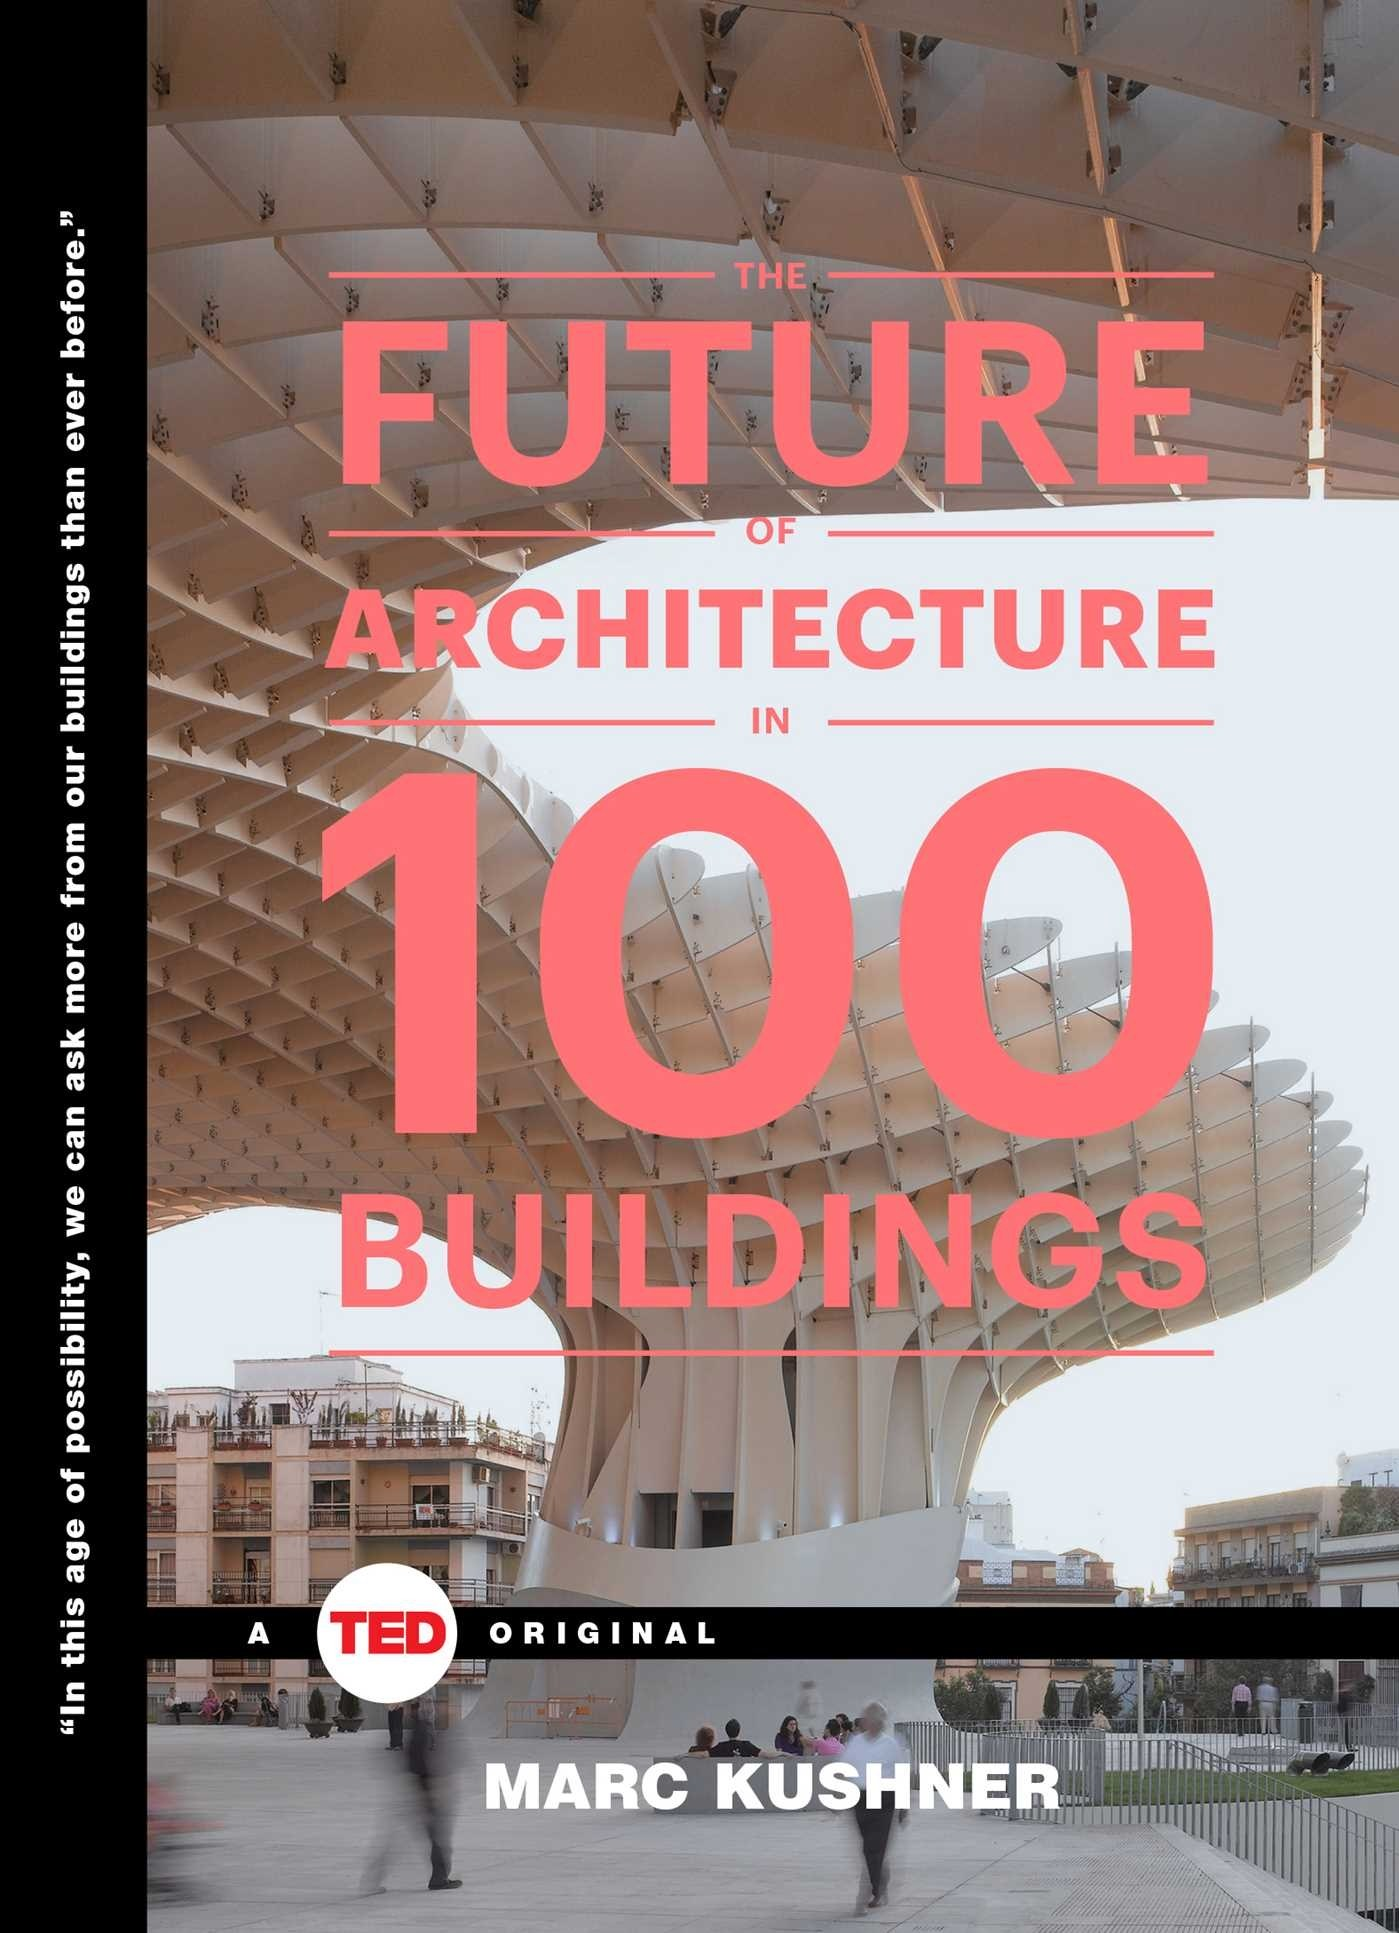 the-future-of-architecture-in-100-buildings (1)